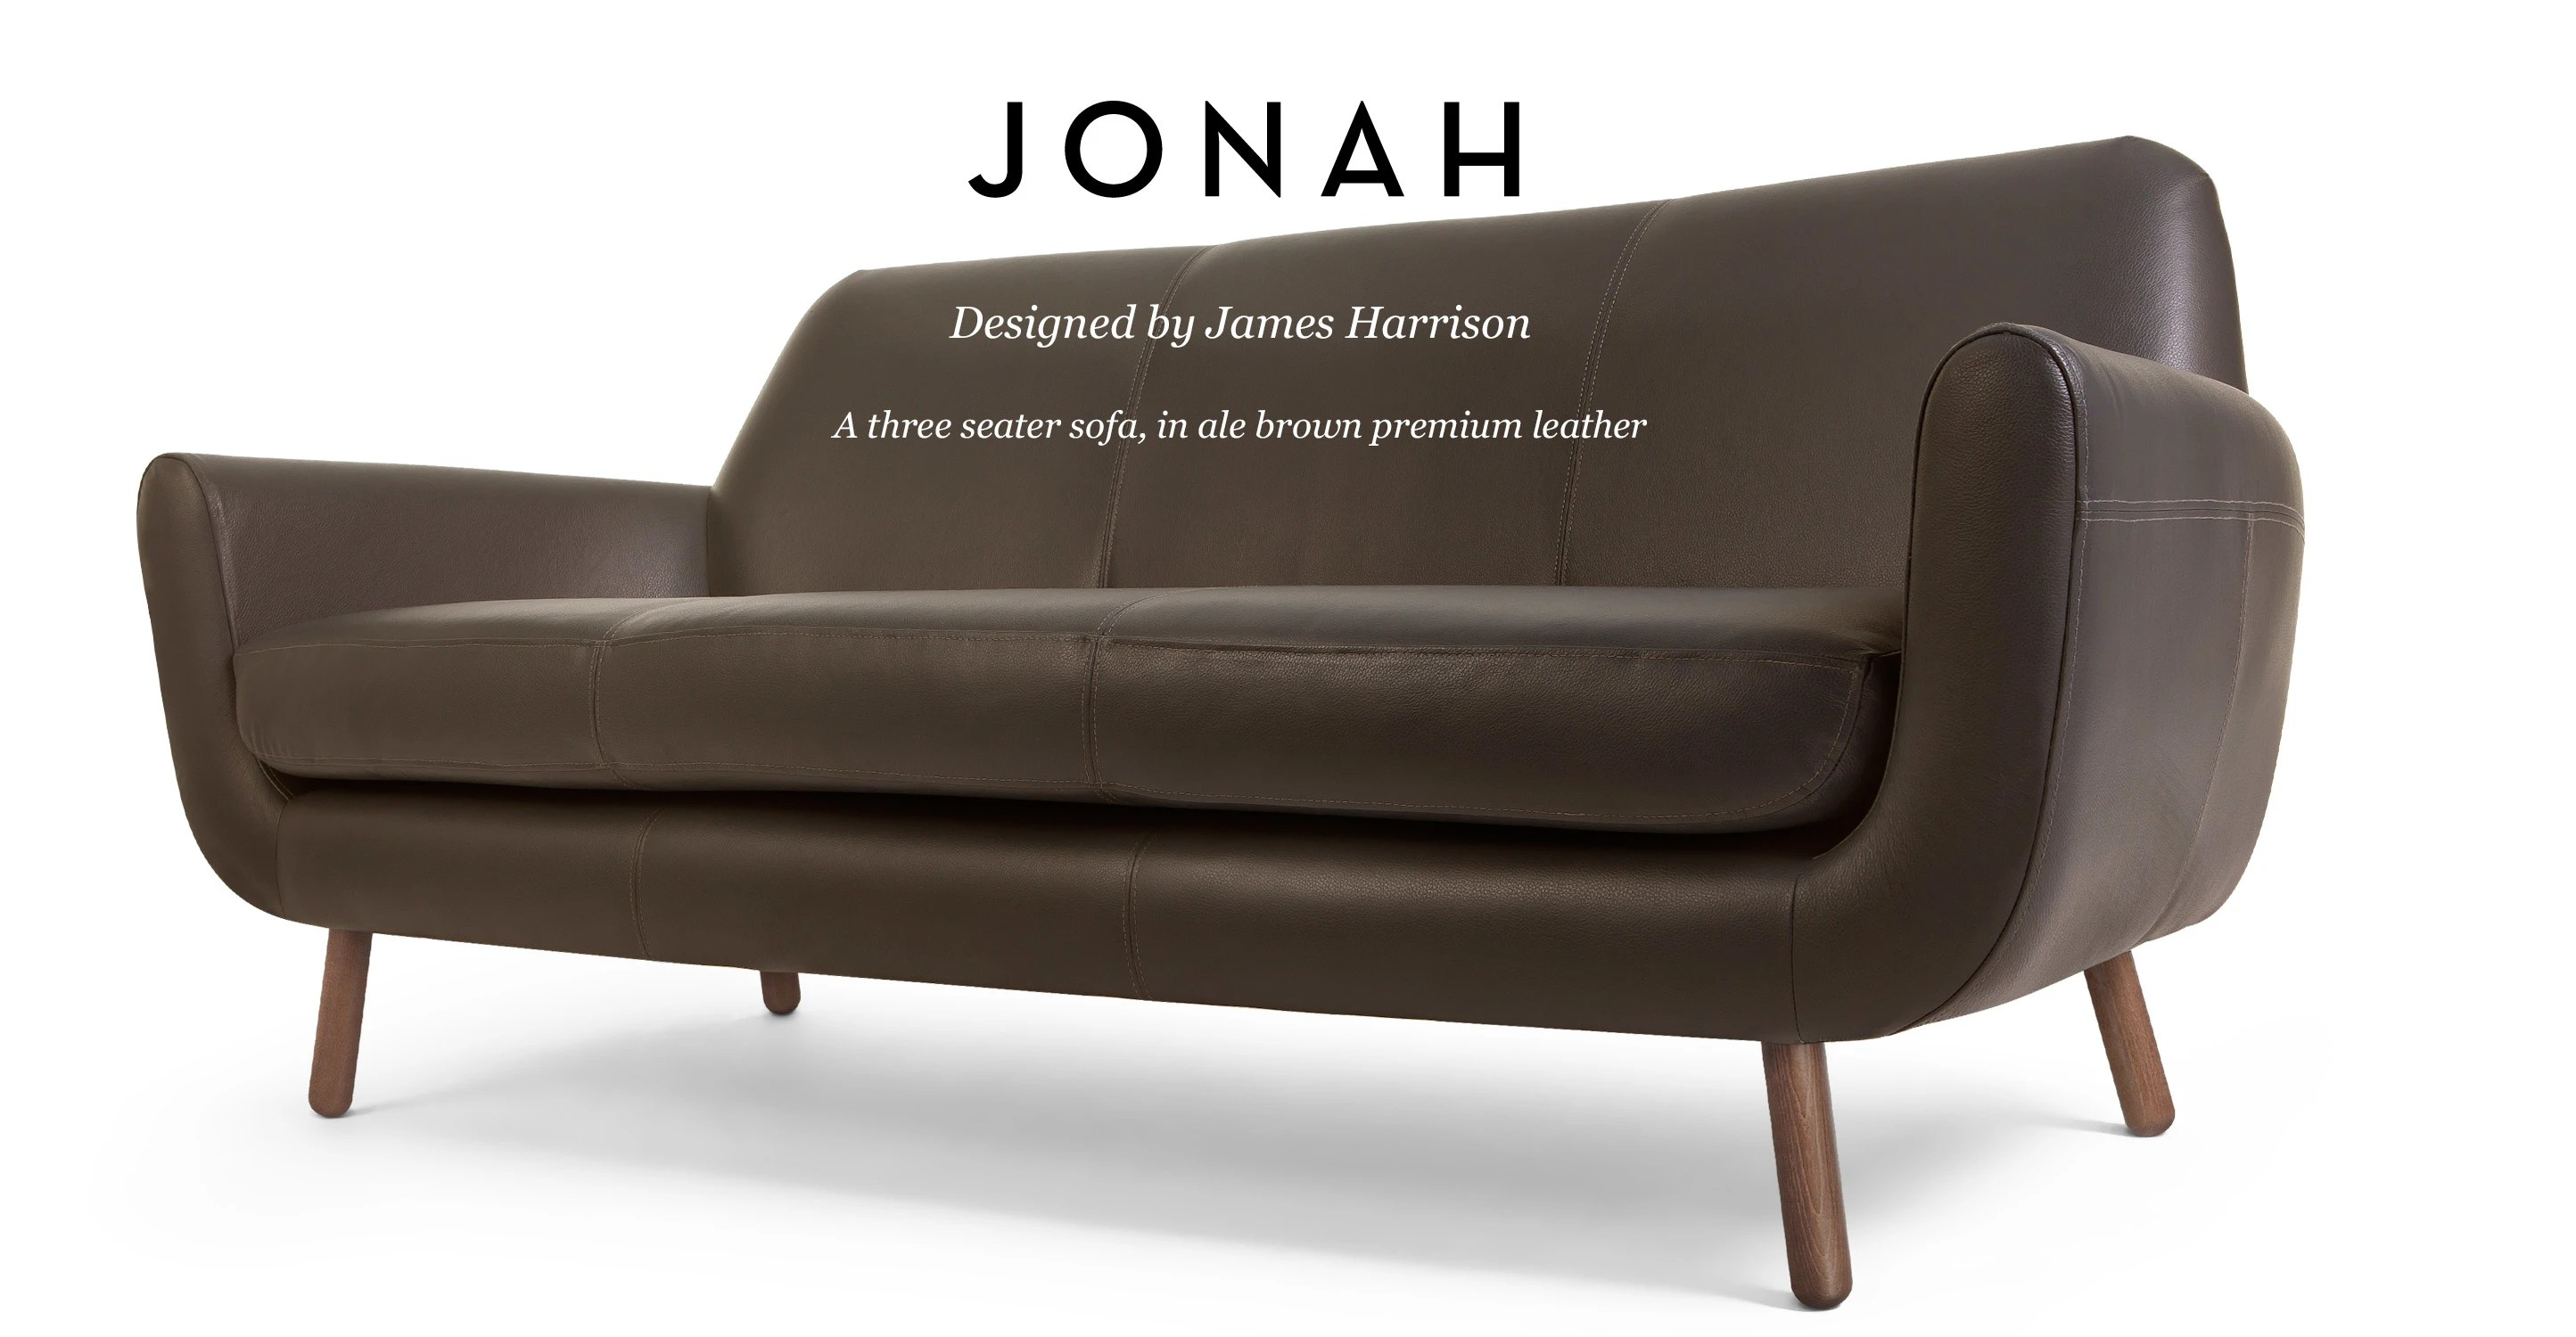 james harrison chair parsons slipcover pattern jonah 3 seater sofa in ale brown premium leather made